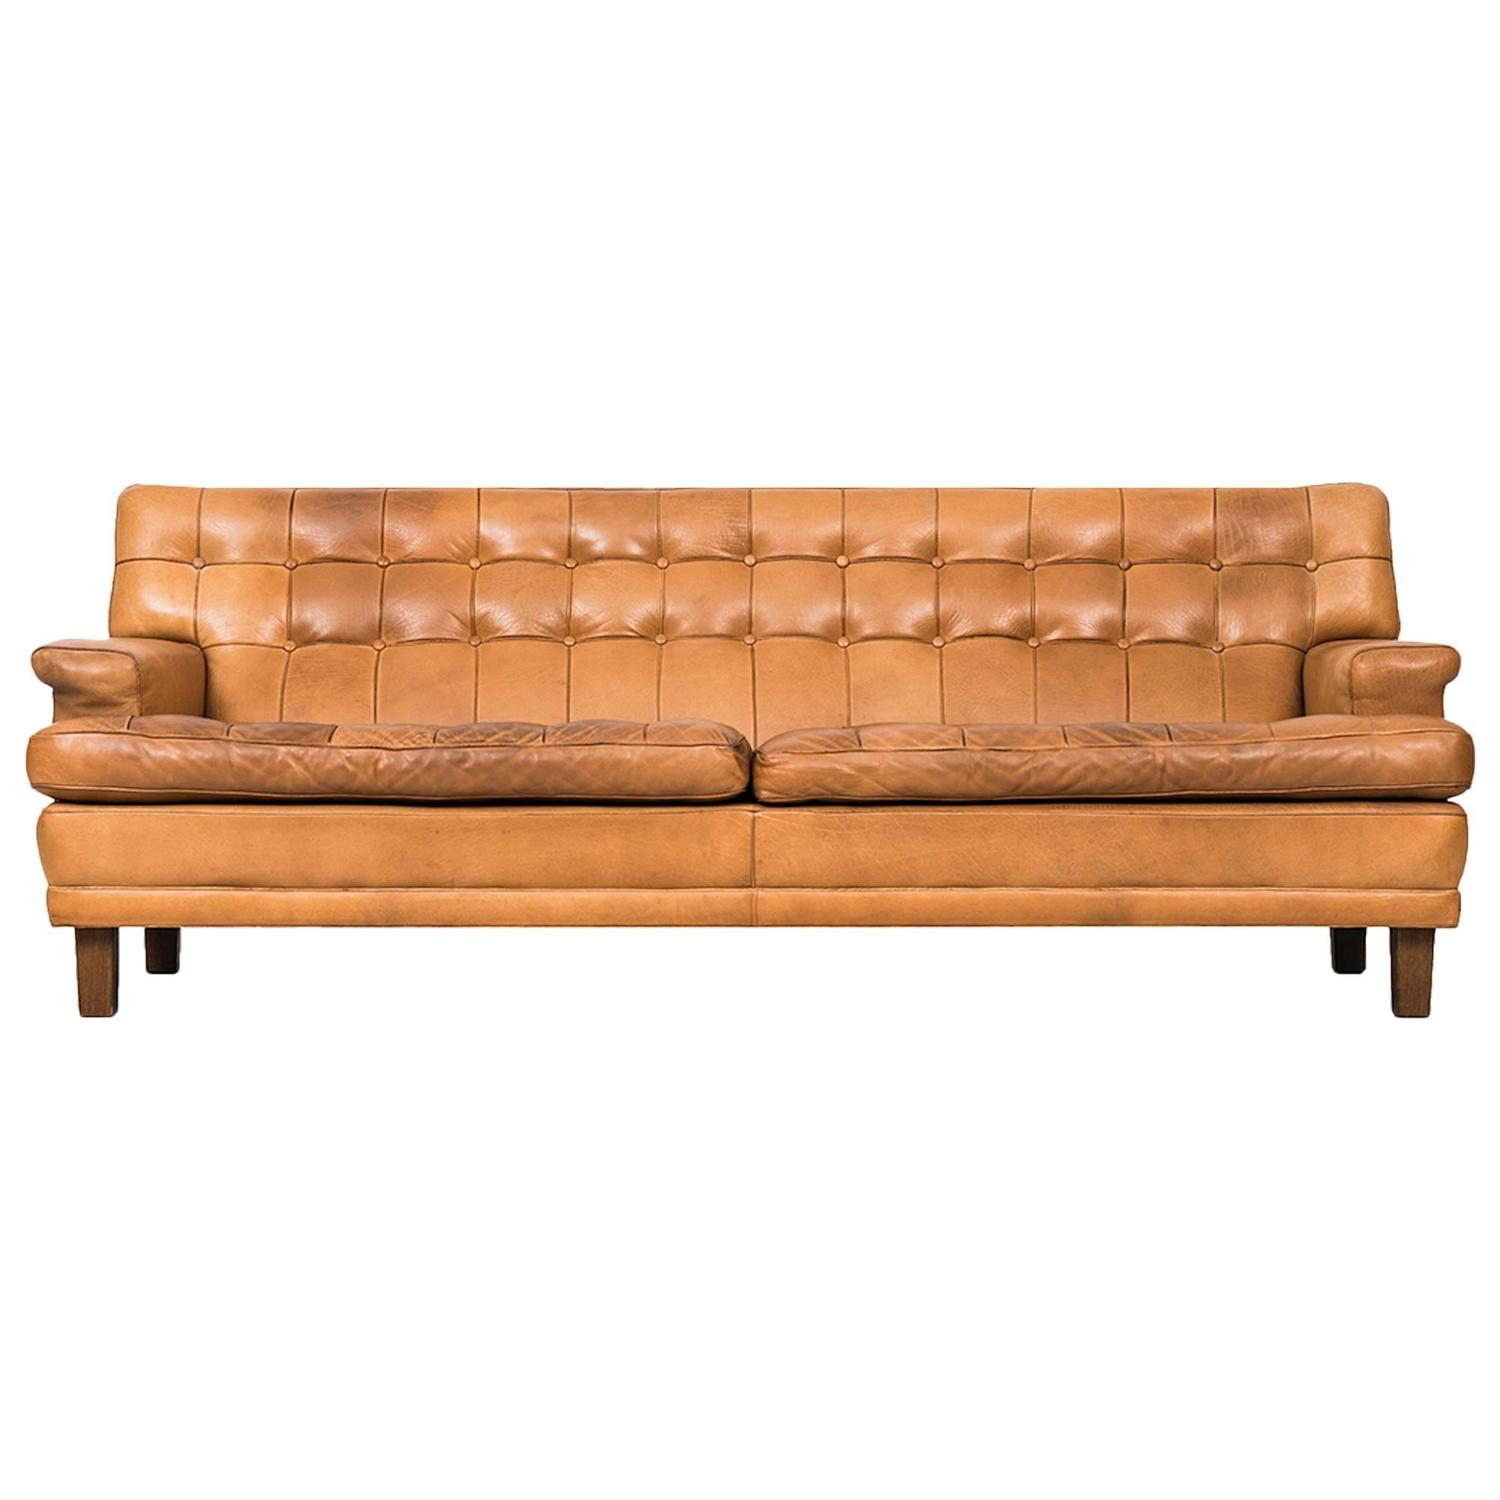 arne norell merkur sofa in cognac brown leather by norell ab in sweden for sale at 1stdibs. Black Bedroom Furniture Sets. Home Design Ideas